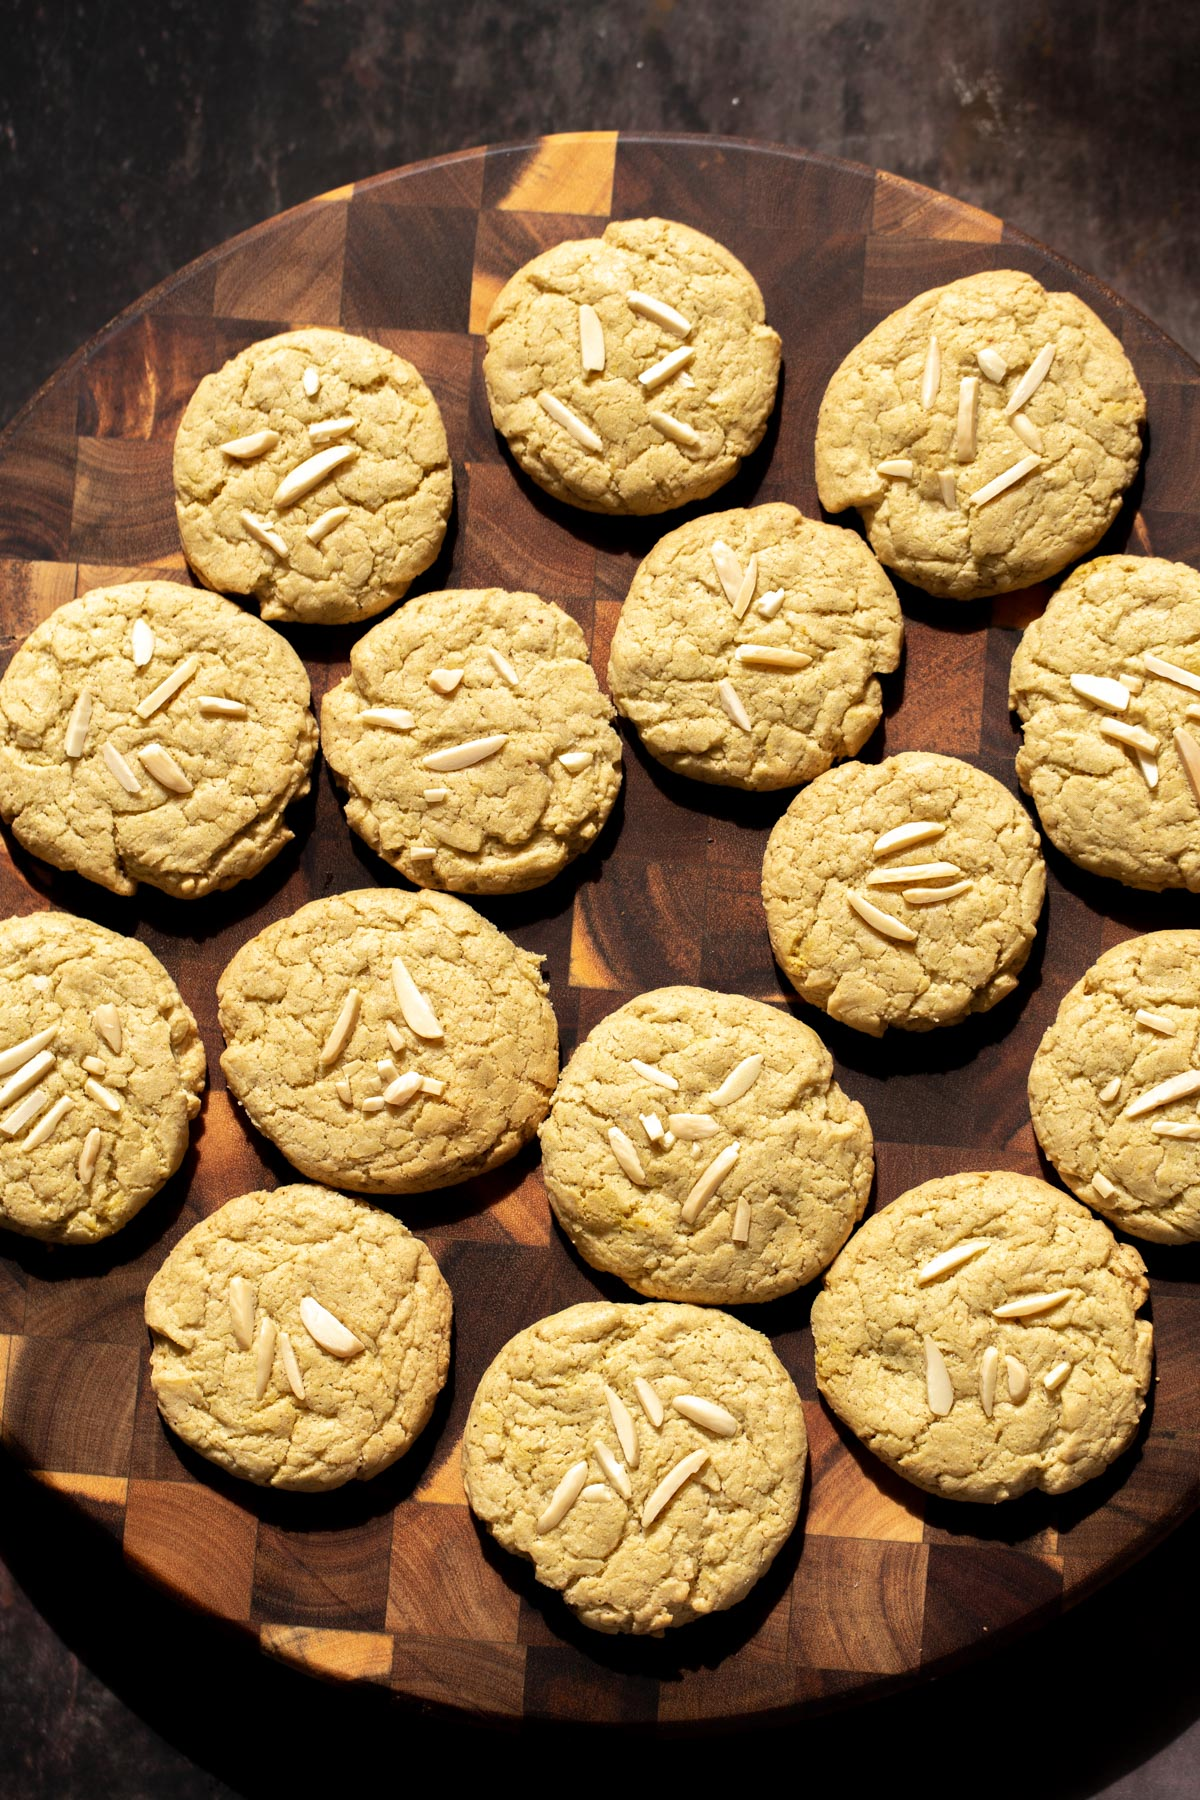 vegan pistachio cookies decorated with almond slivers on a wooden board